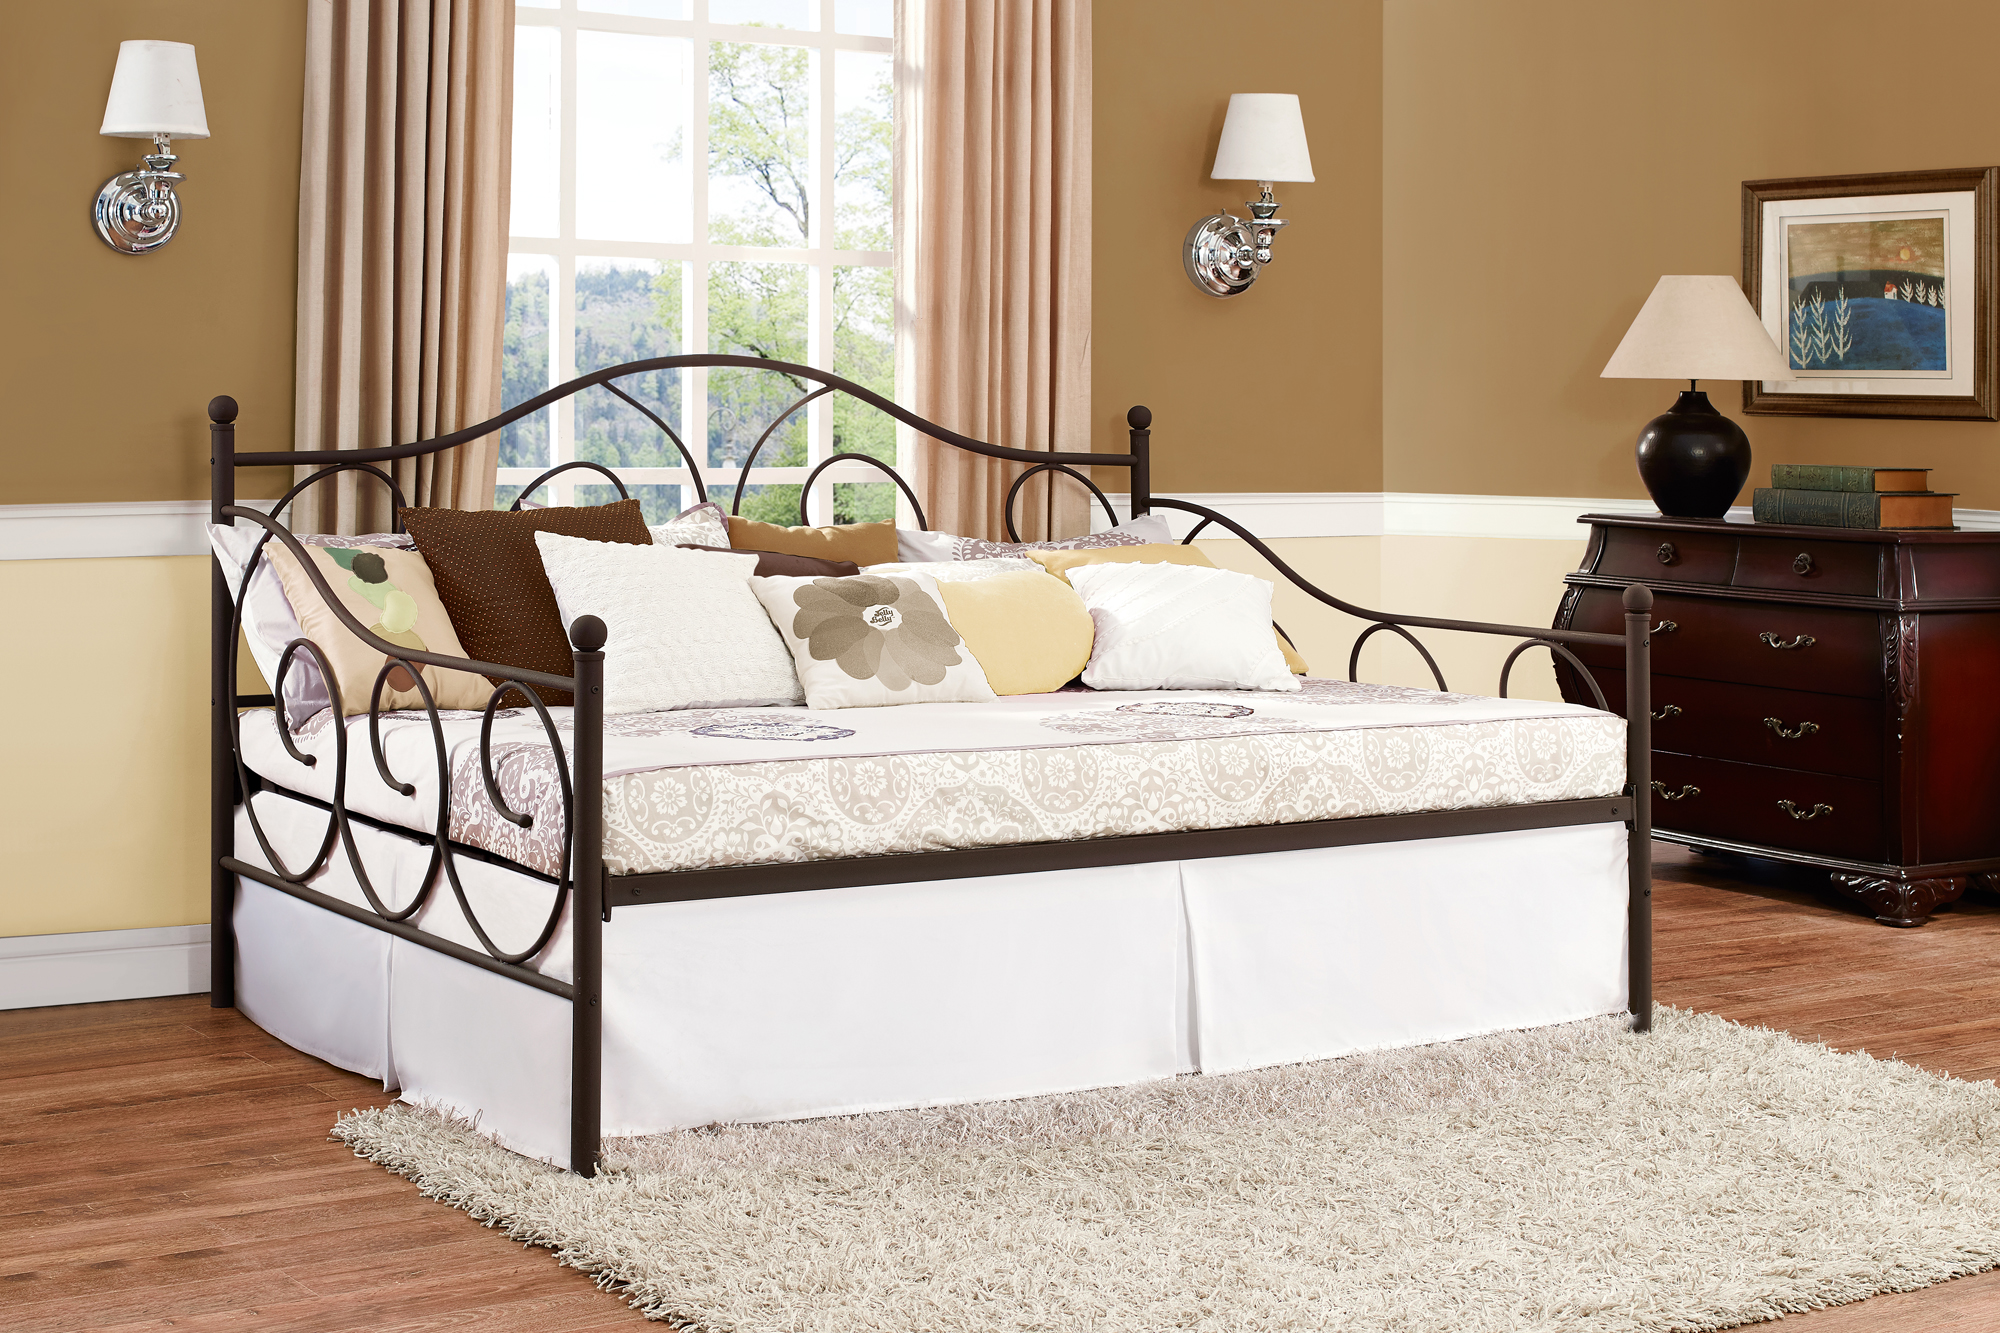 Trundle beds for adults - Daybeds Under 200 Full Size Daybed With Trundle Wooden Daybed